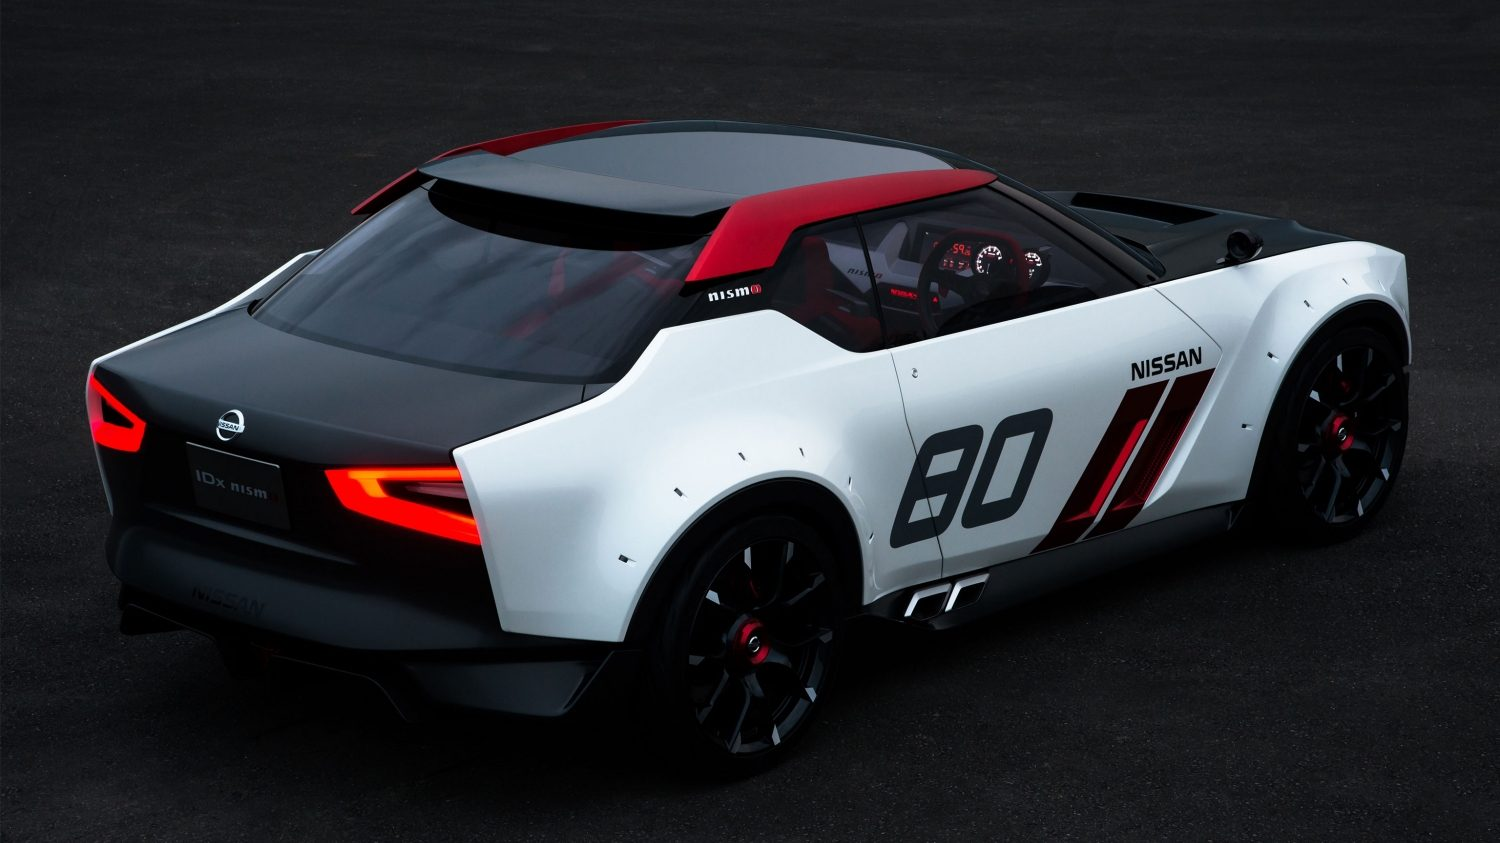 Experience Nissan - Concept car - IDx NISMO - 3/4 rear view